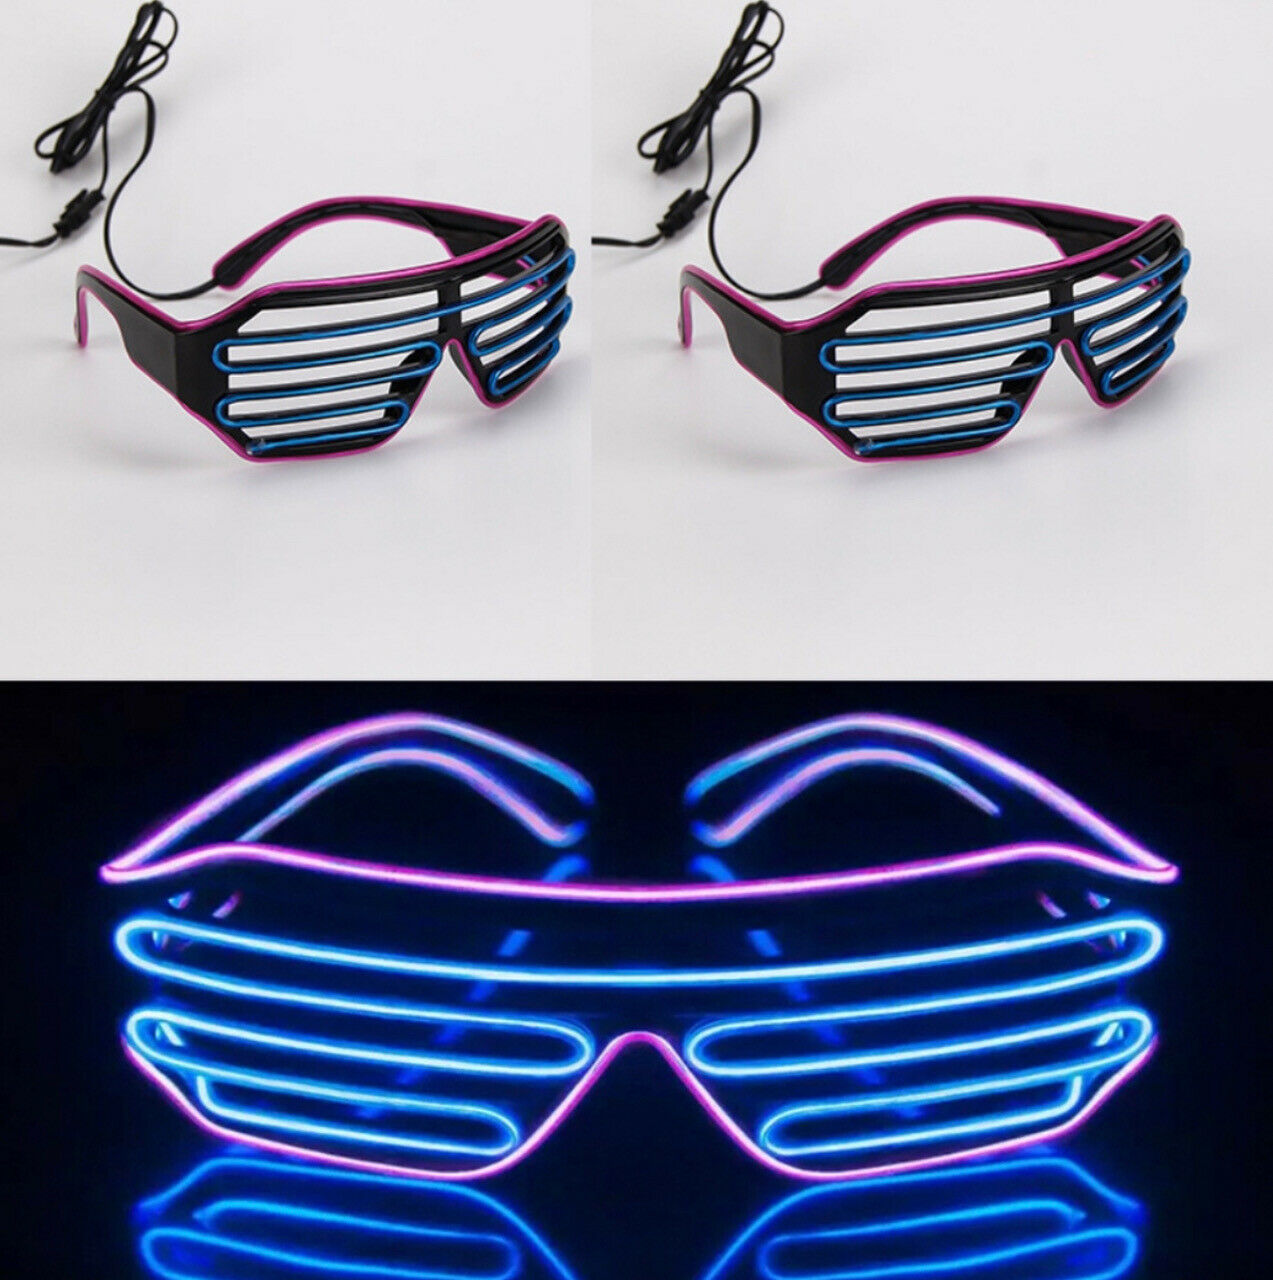 10 Pairs of Neon Glasses   Light Up Shades Flashing Rave Festival Party Muse